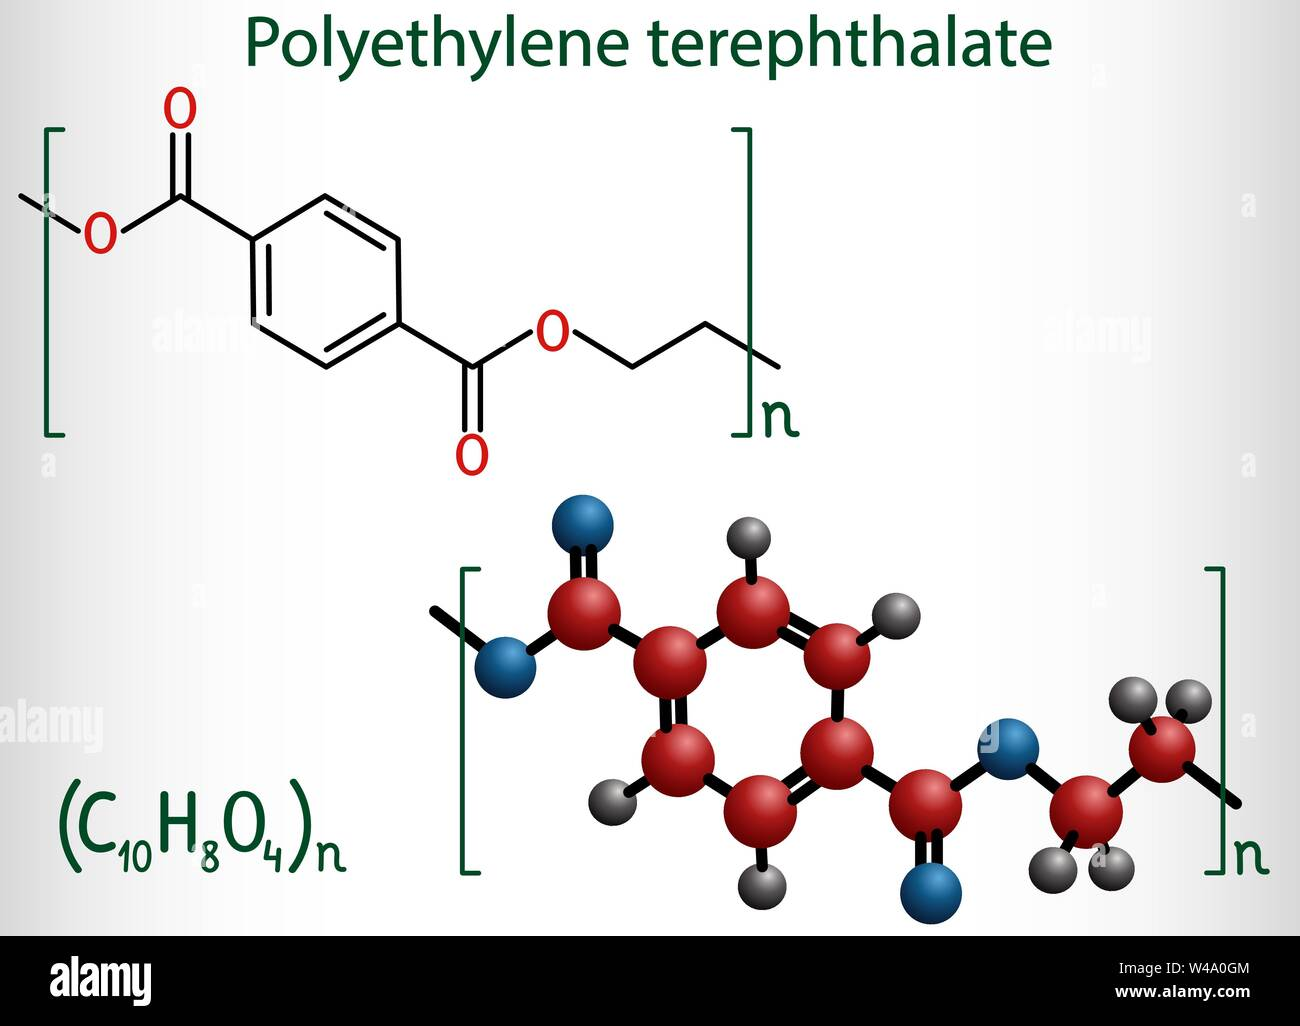 Polyethylene terephthalate or PET, PETE polyester